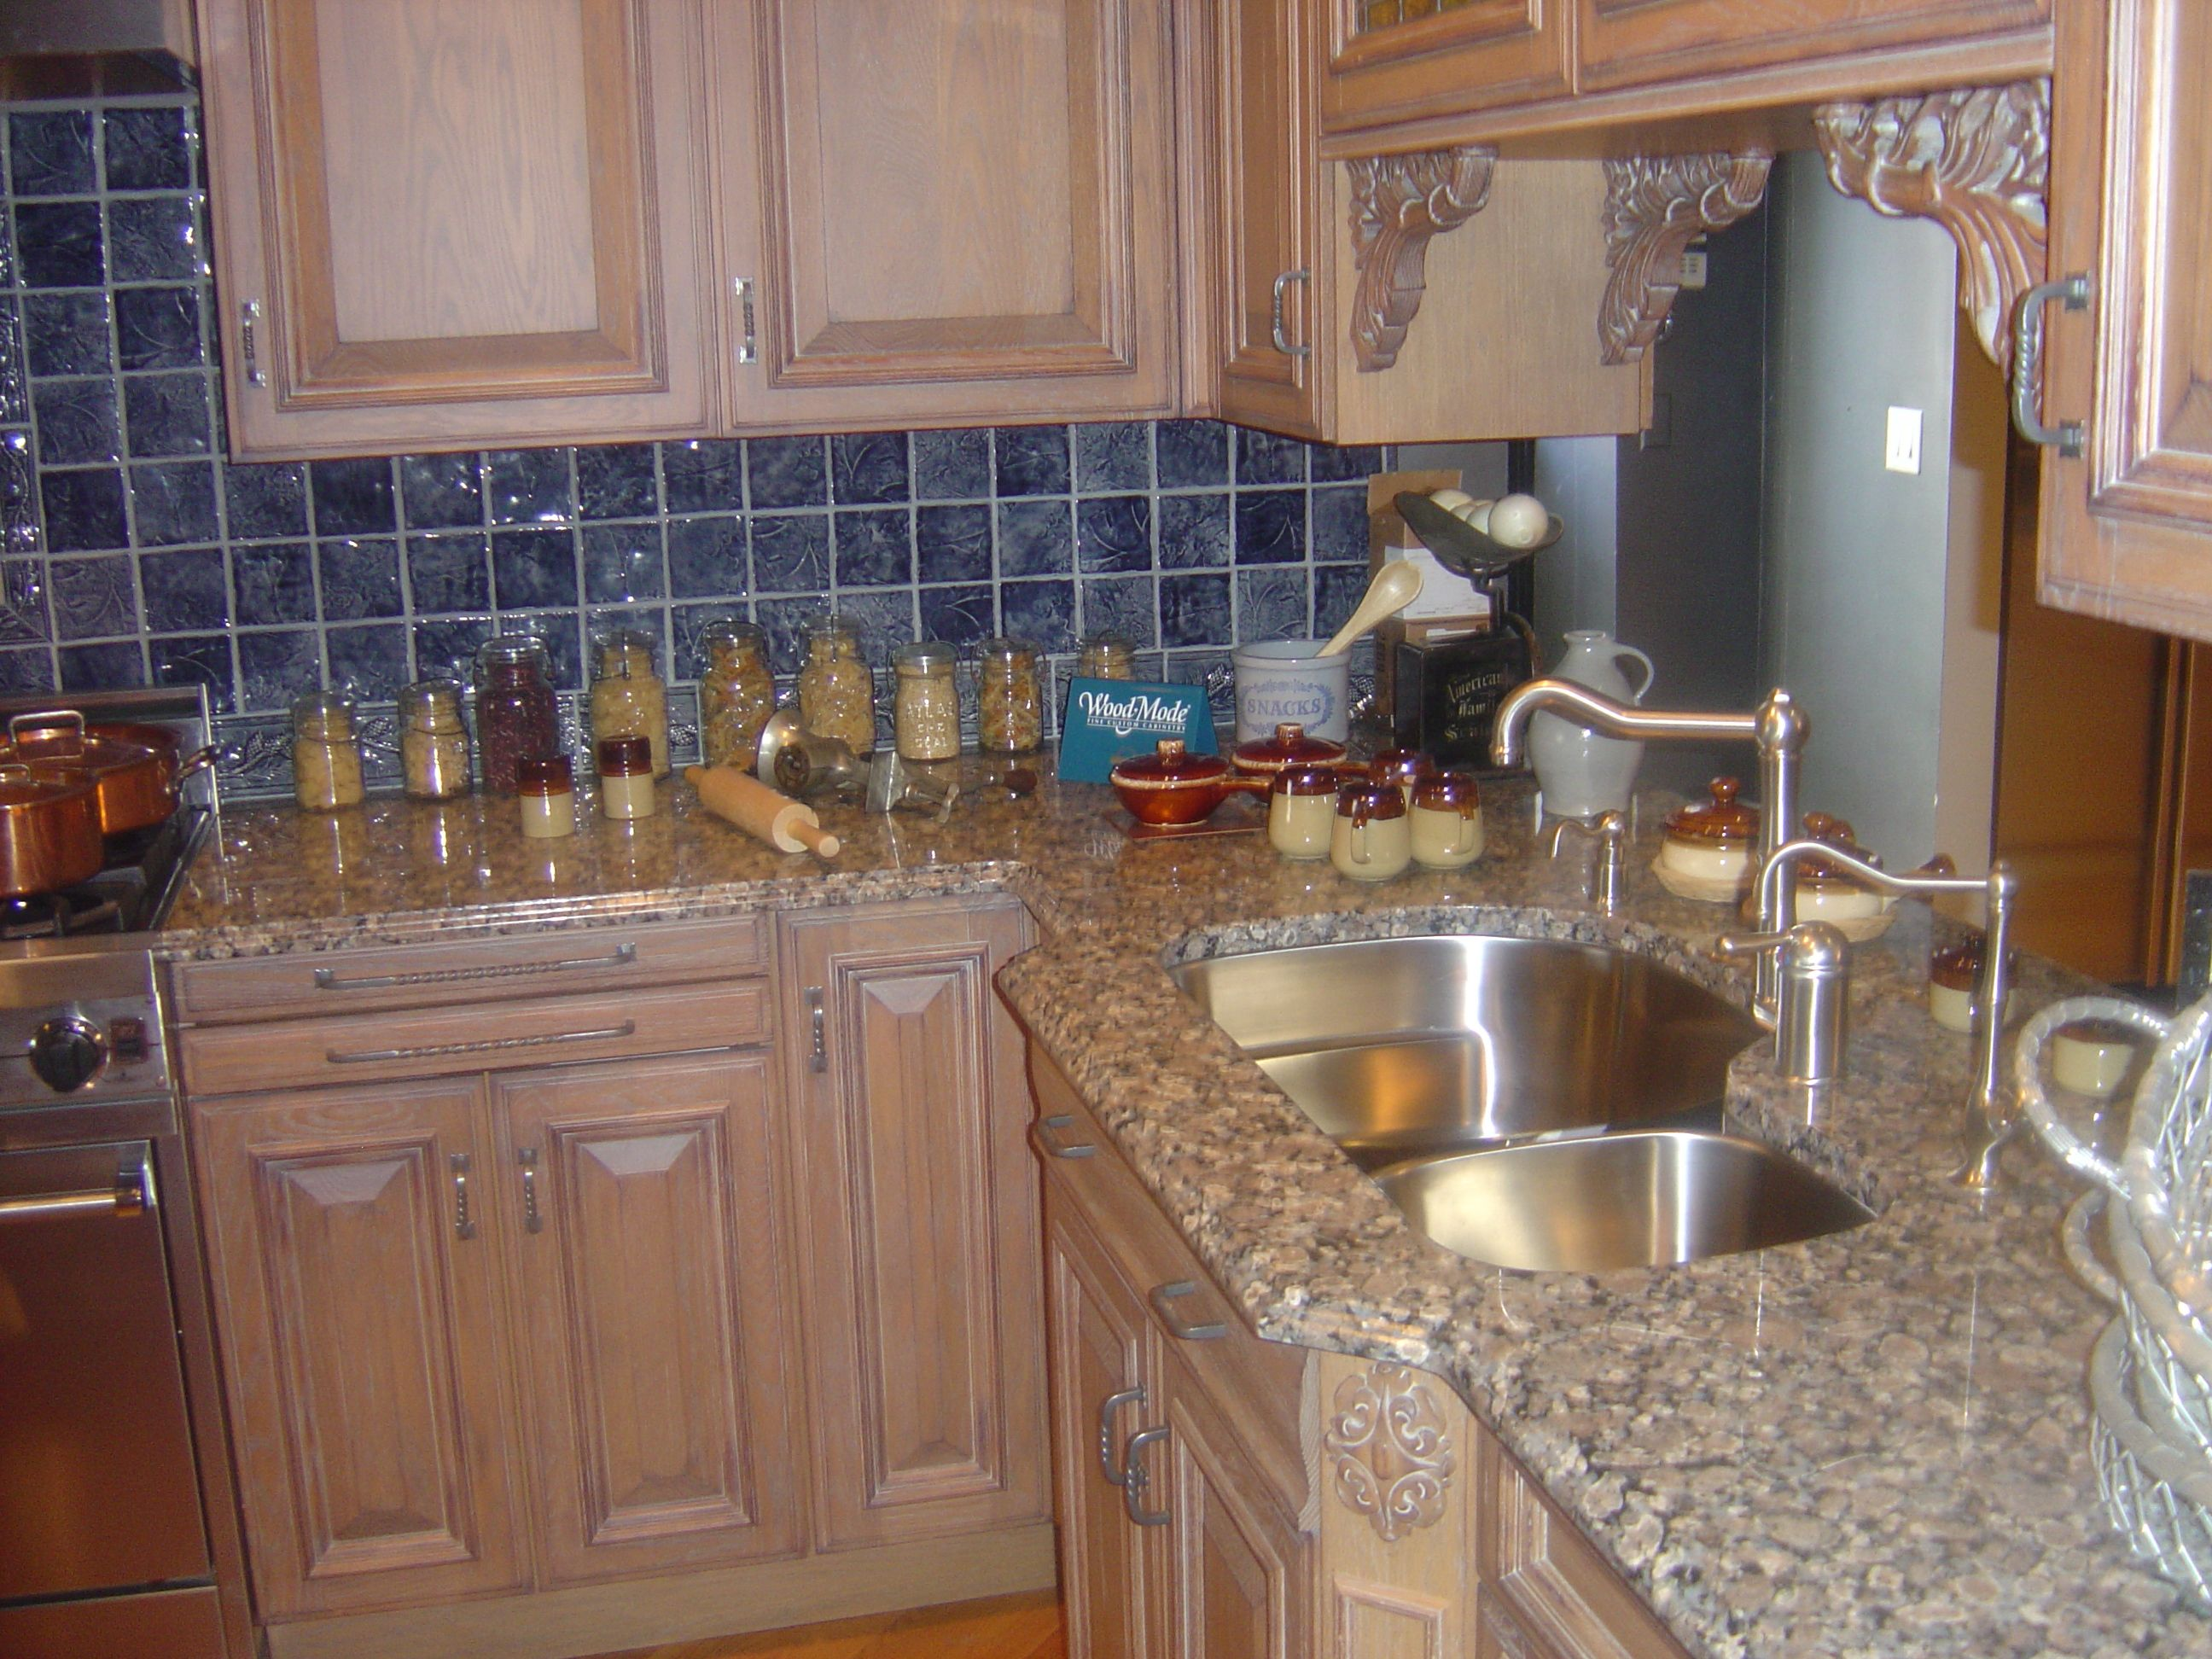 Marble Is Softer Than Many Other Stones Used For Countertops The Owner Must Be Made Aware T Quartz Kitchen Countertops Outdoor Kitchen Countertops Countertops